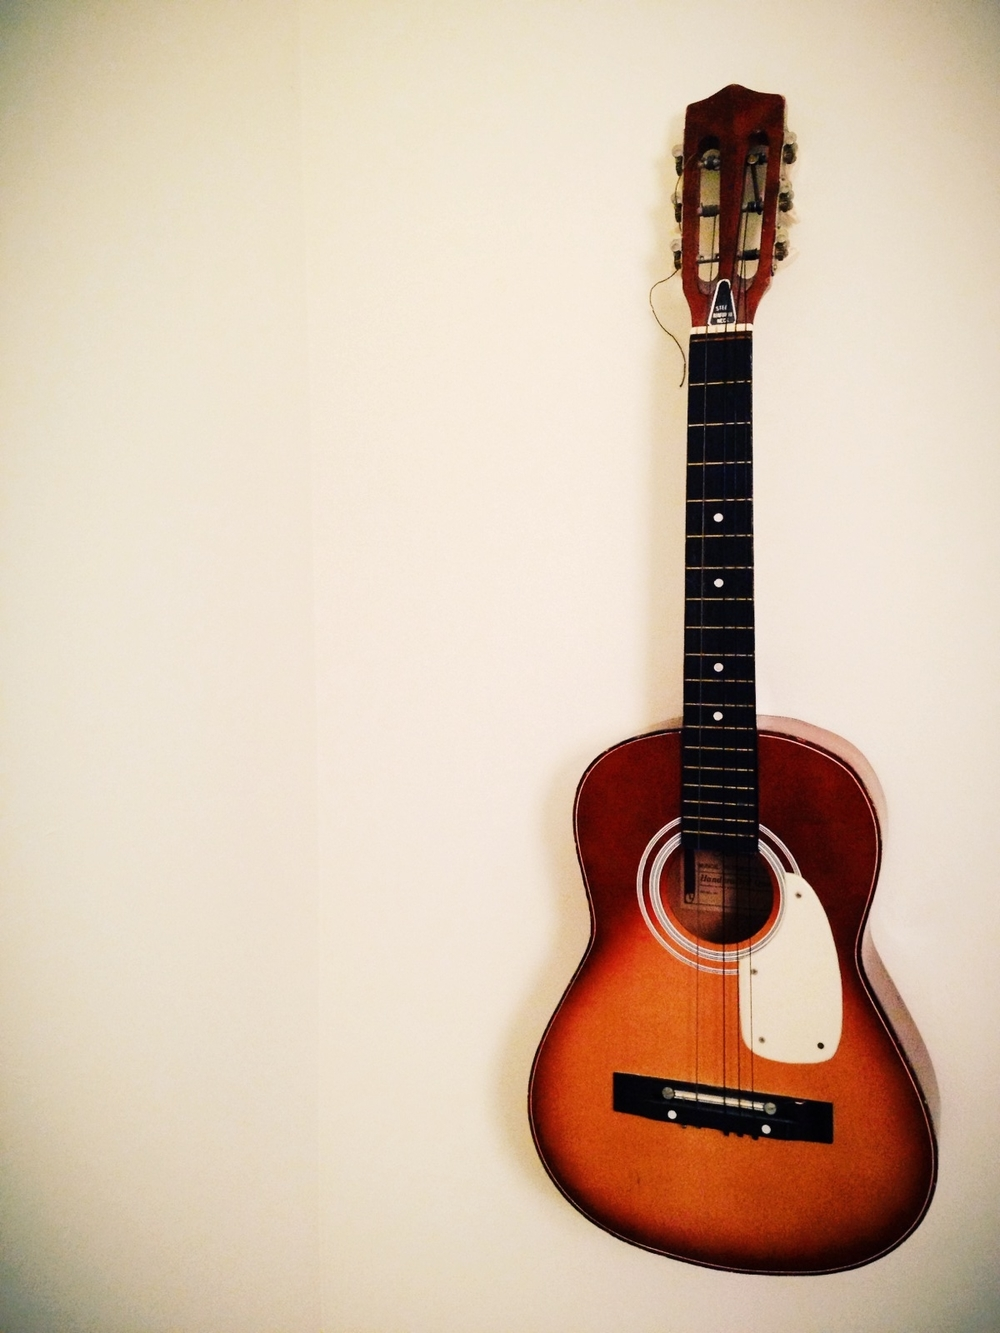 Childhood guitar